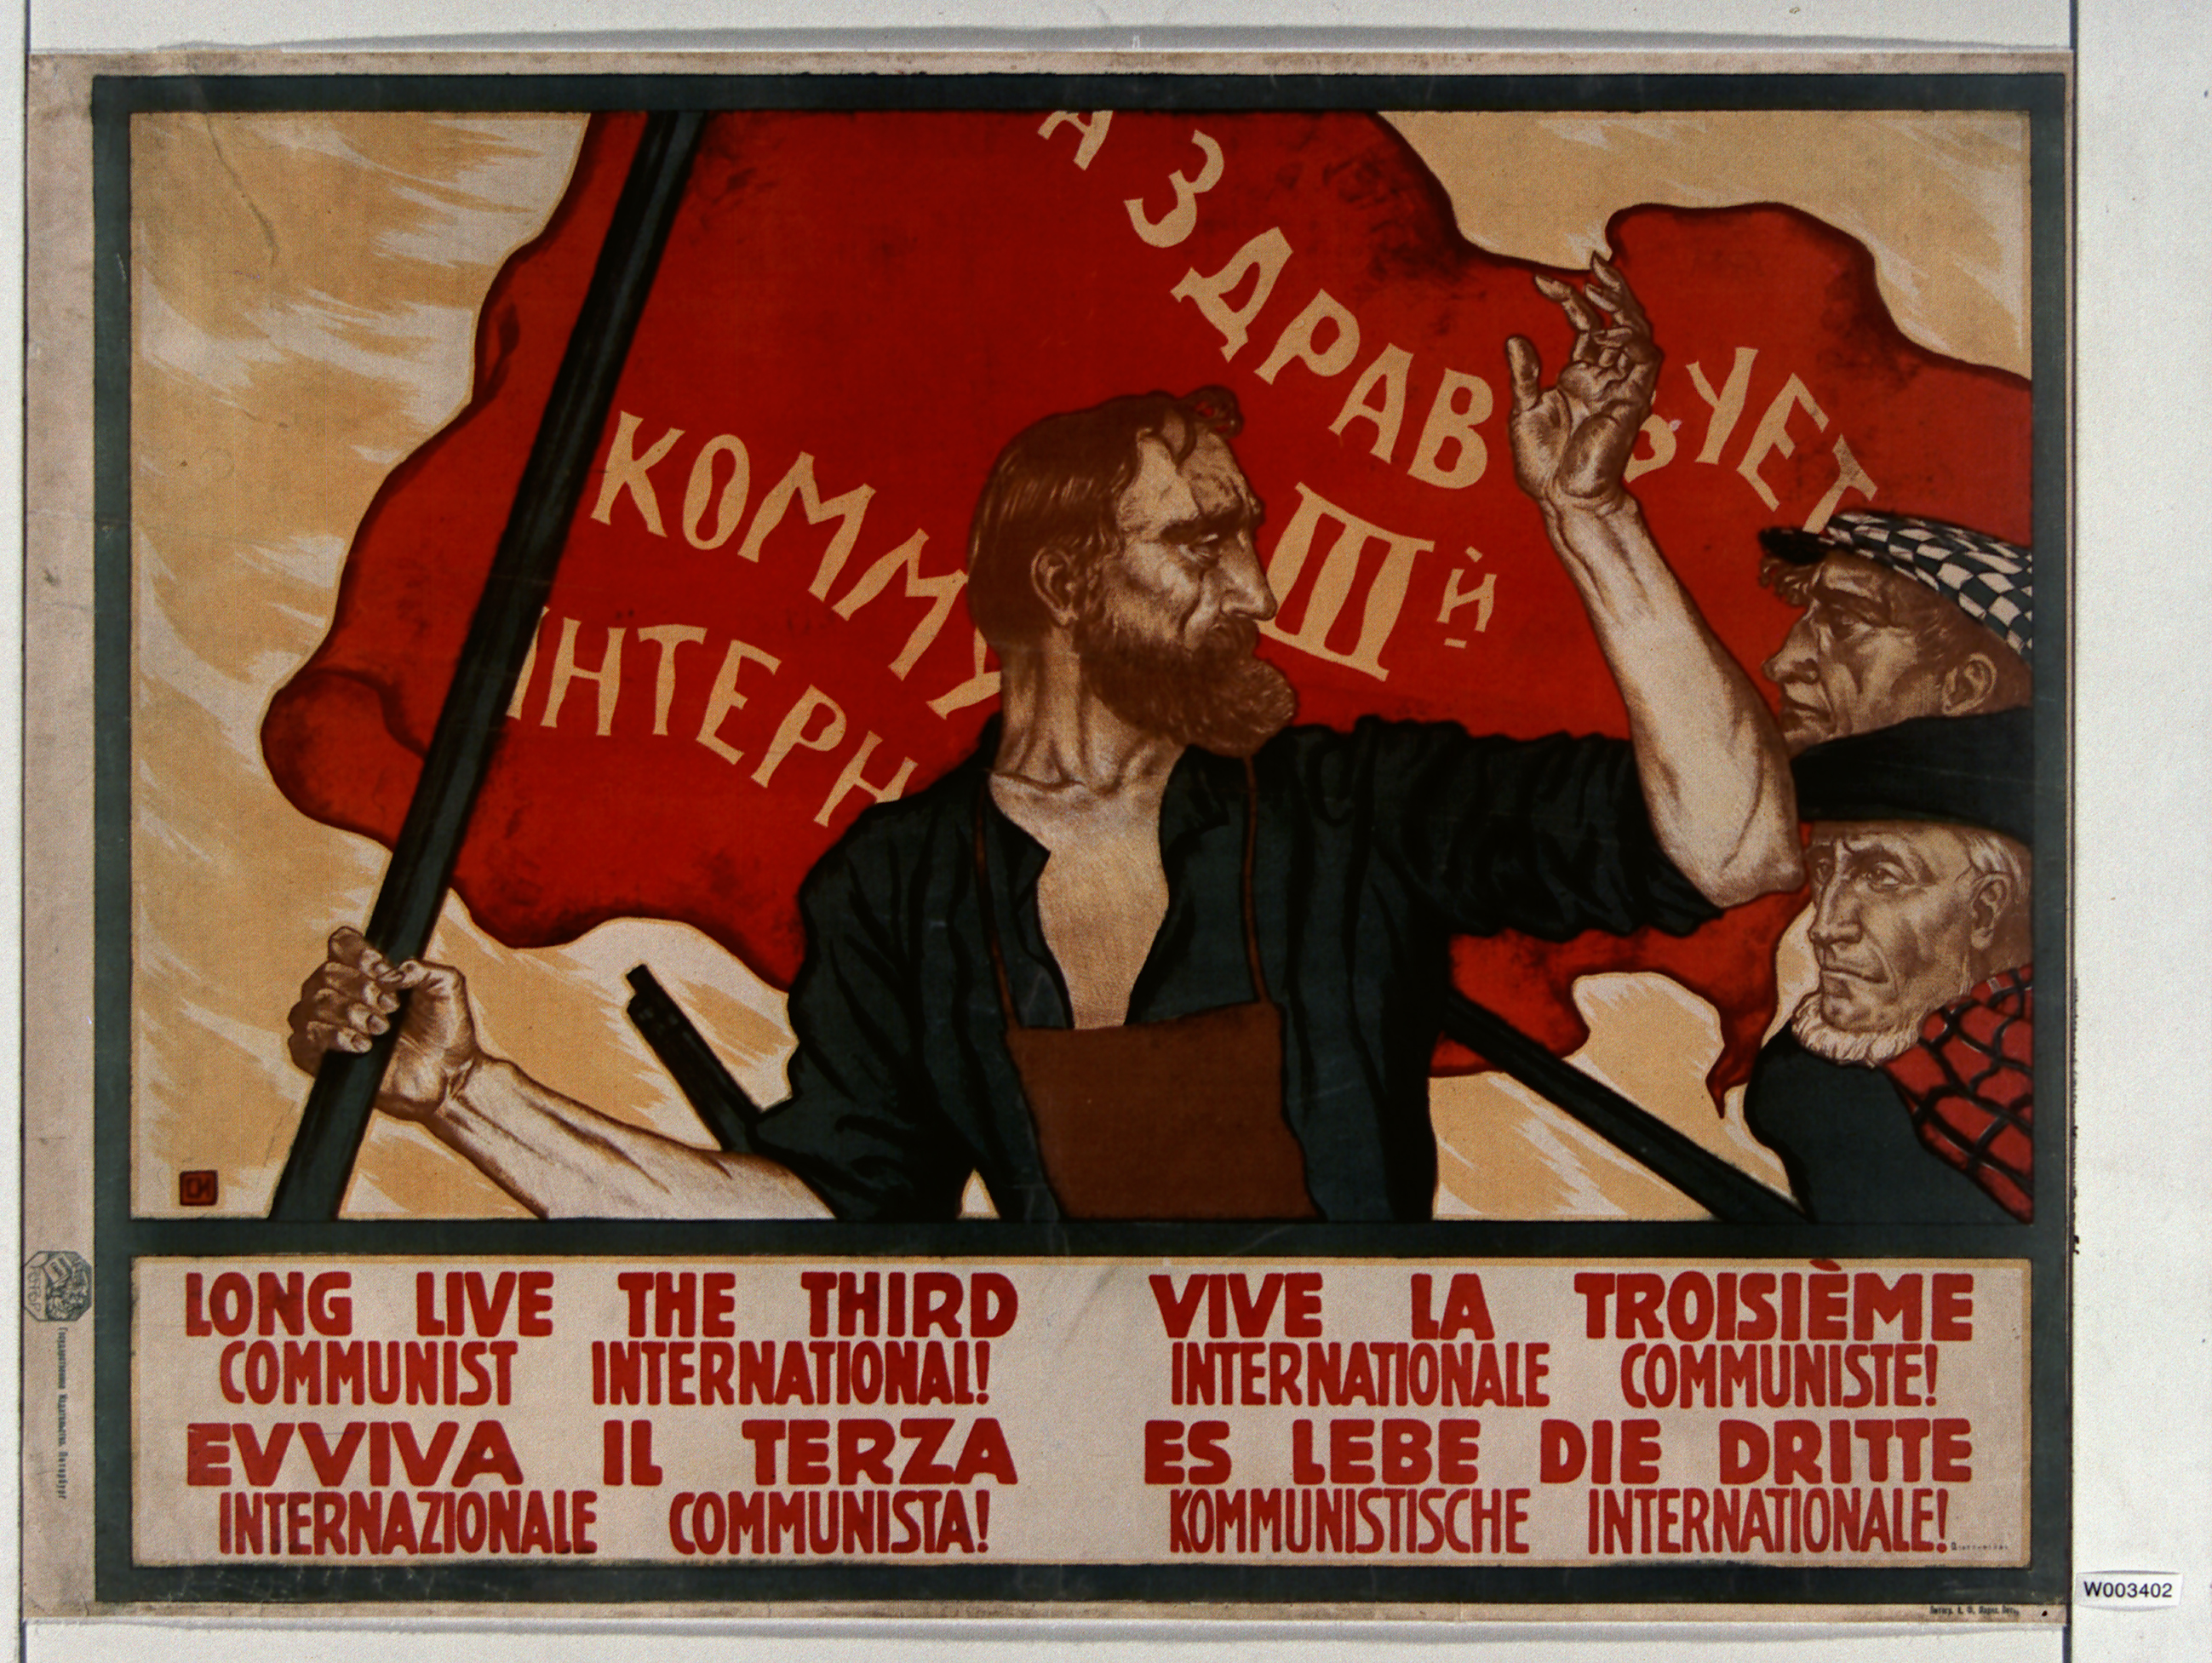 Affiche russe «Vive la 3ème internationale communiste!—Long live the third communist international!—Evviva il terza internazionale communista!—Es lebbe die dritte kommunistche internationale!», 1917—1921.